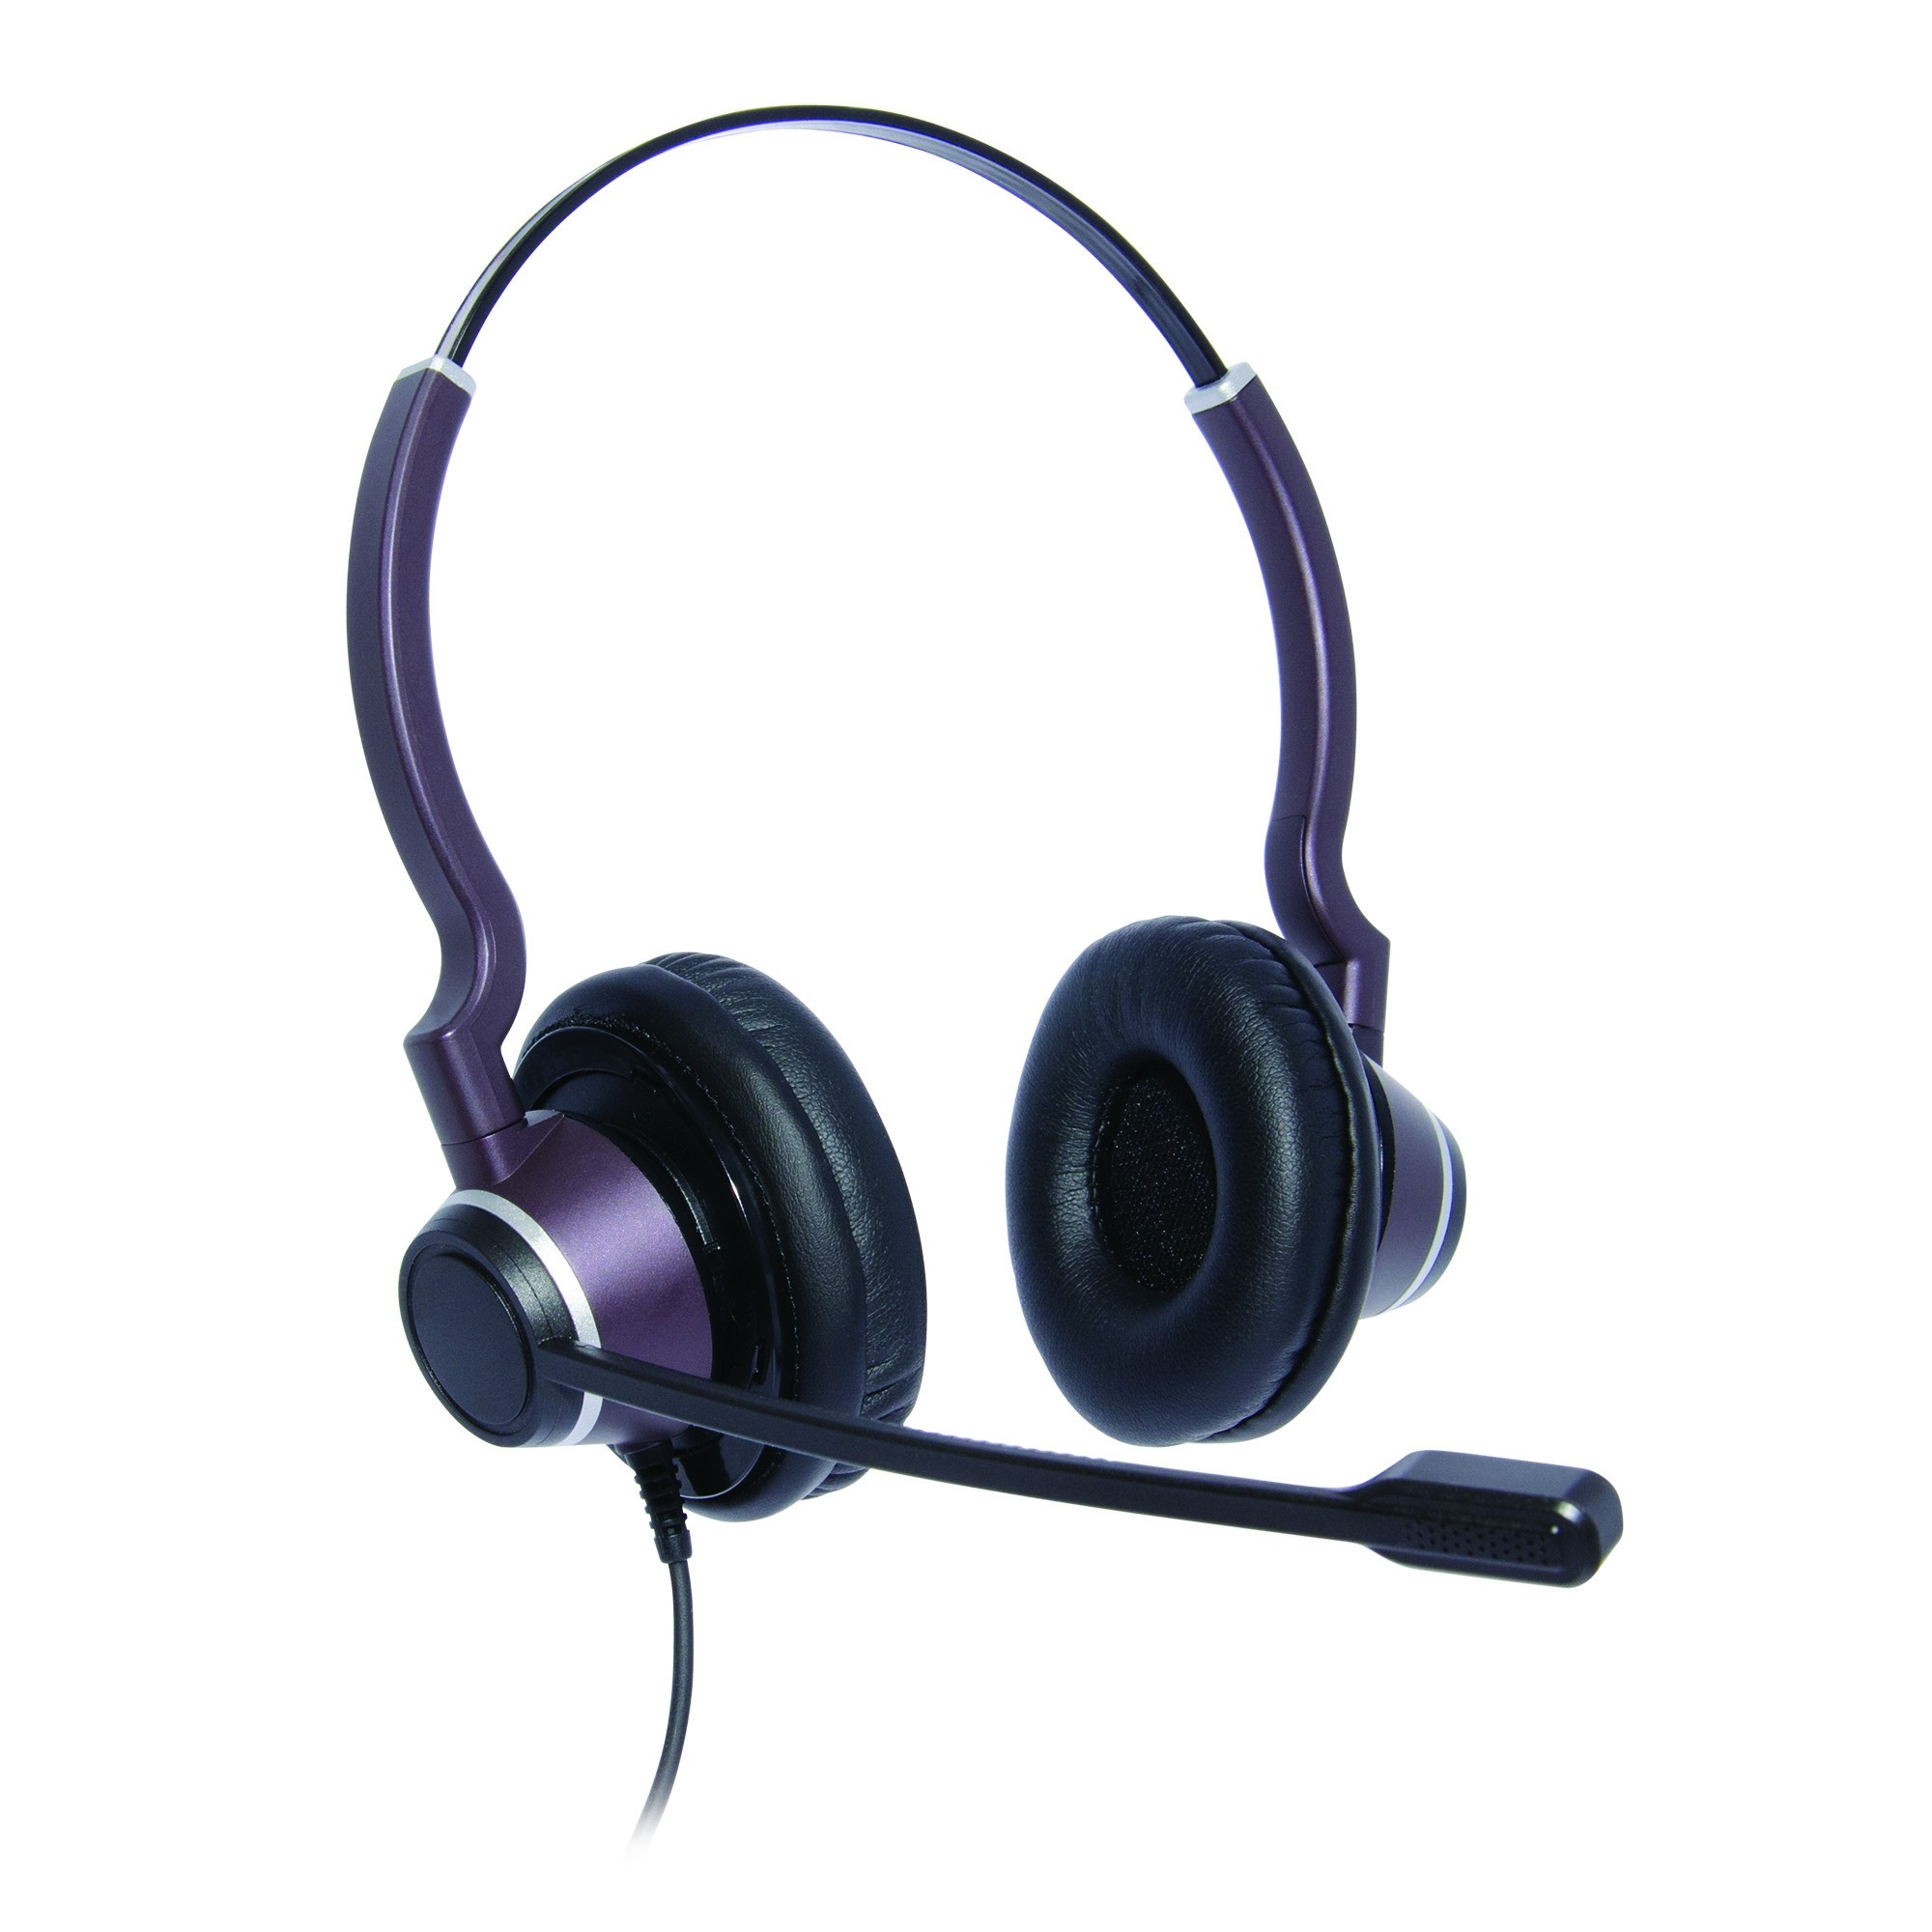 Snom 300 Binaural Ultra Noise Cancelling Contact Centre Headset